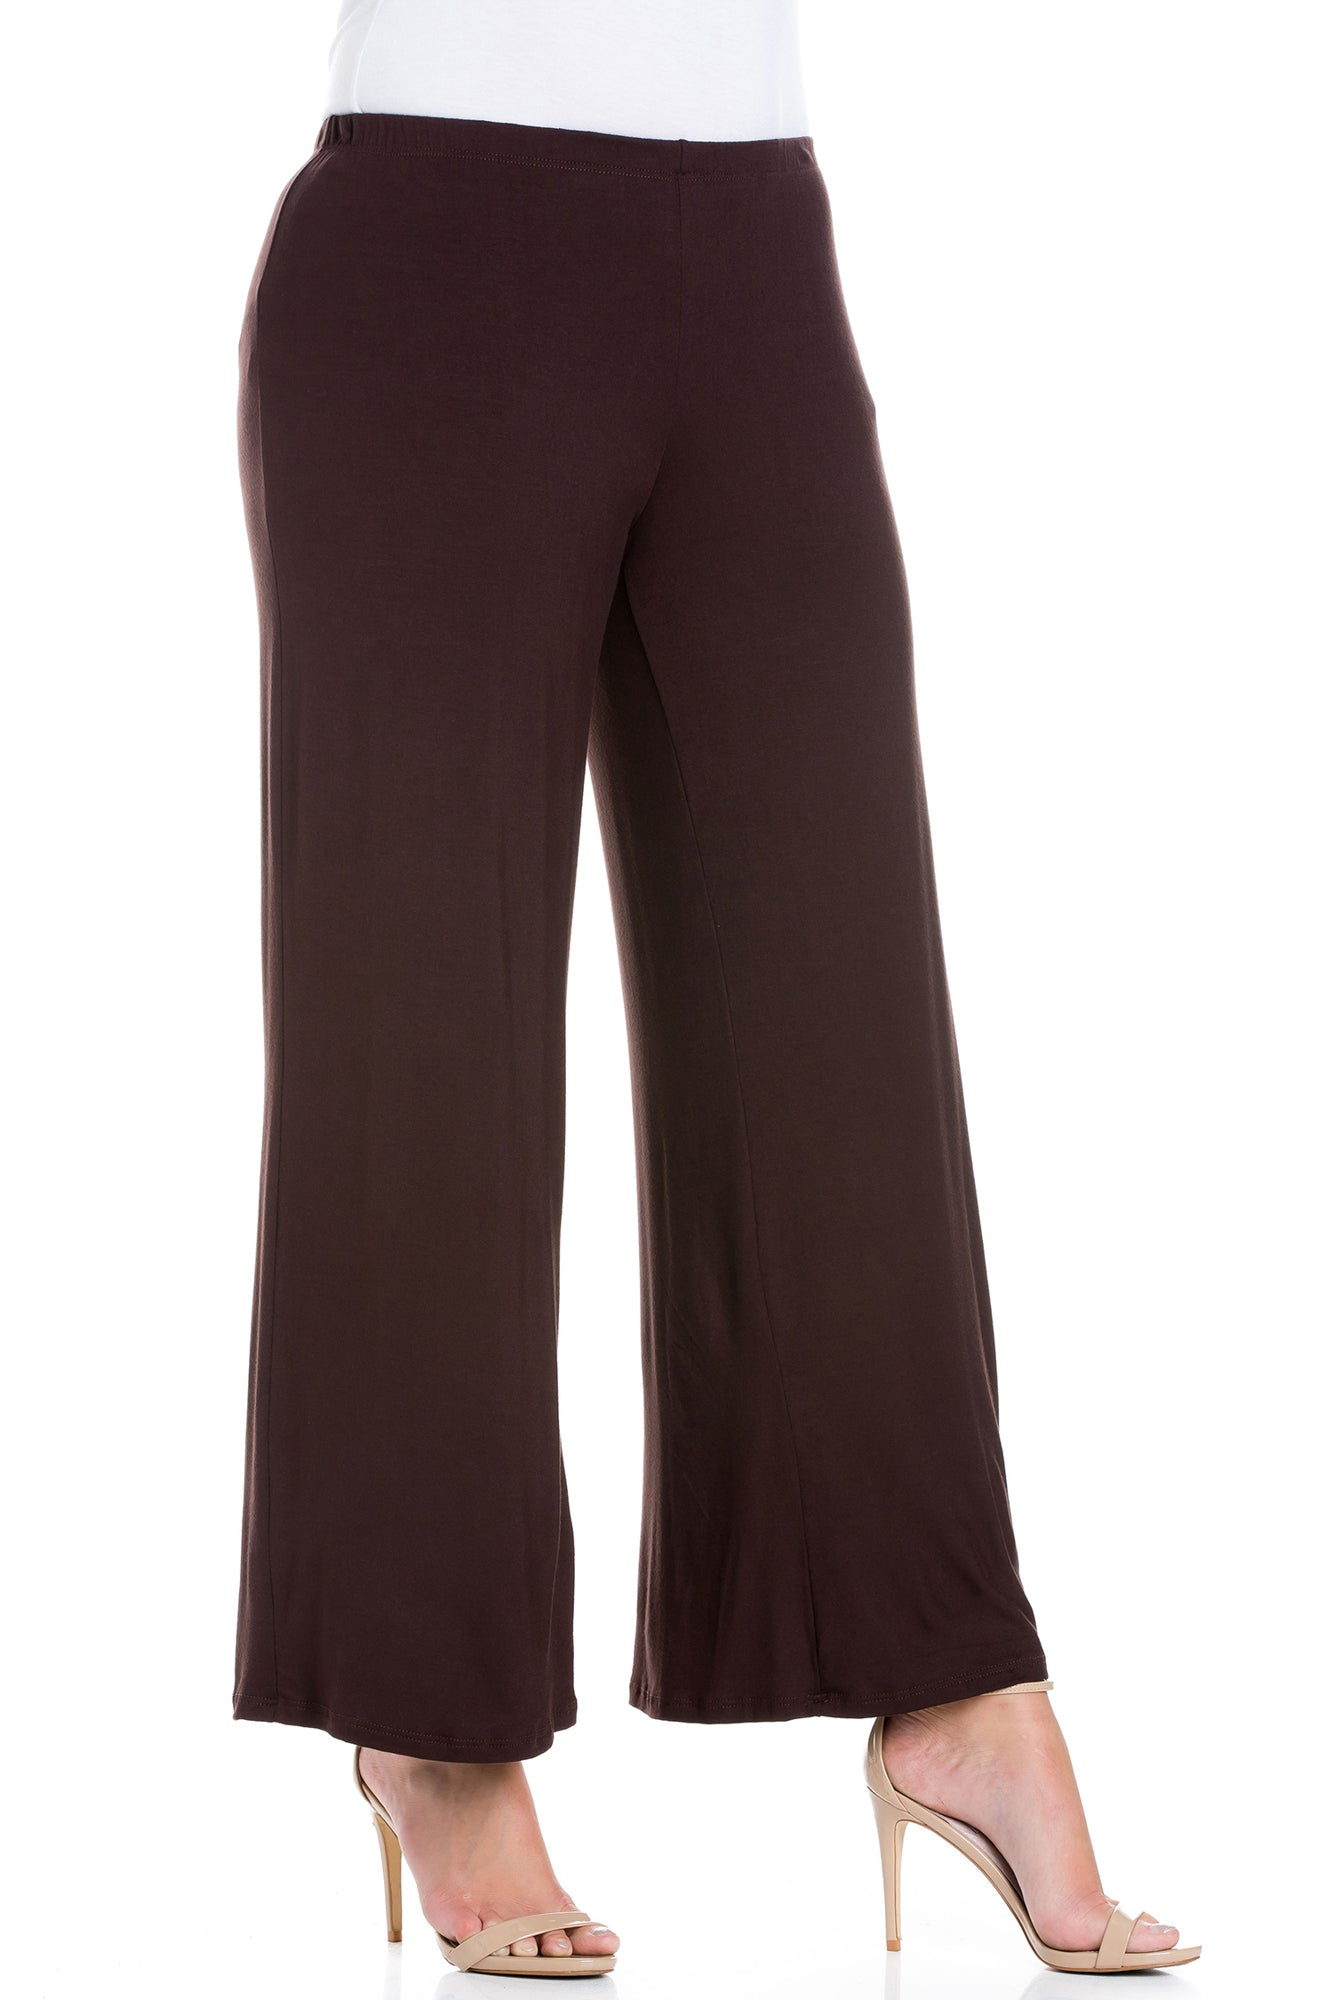 24seven Comfort Apparel Womens Elastic Waist Flared Leg Palazzo Pants-PANTS-24Seven Comfort Apparel-BROWN-S-24/7 Comfort Apparel